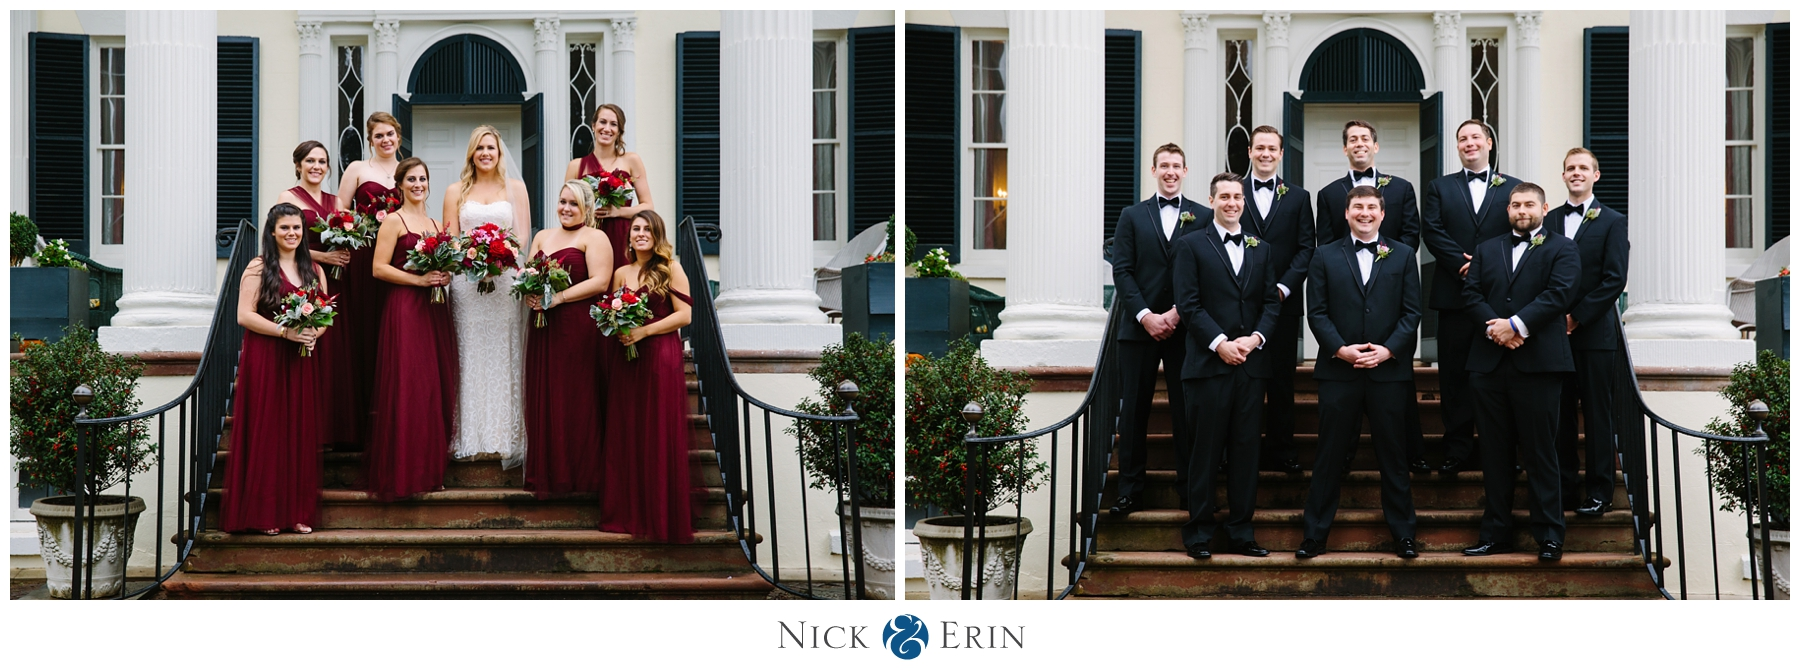 donner_photography_leesburg-virginia-wedding_erin-stuart_0007